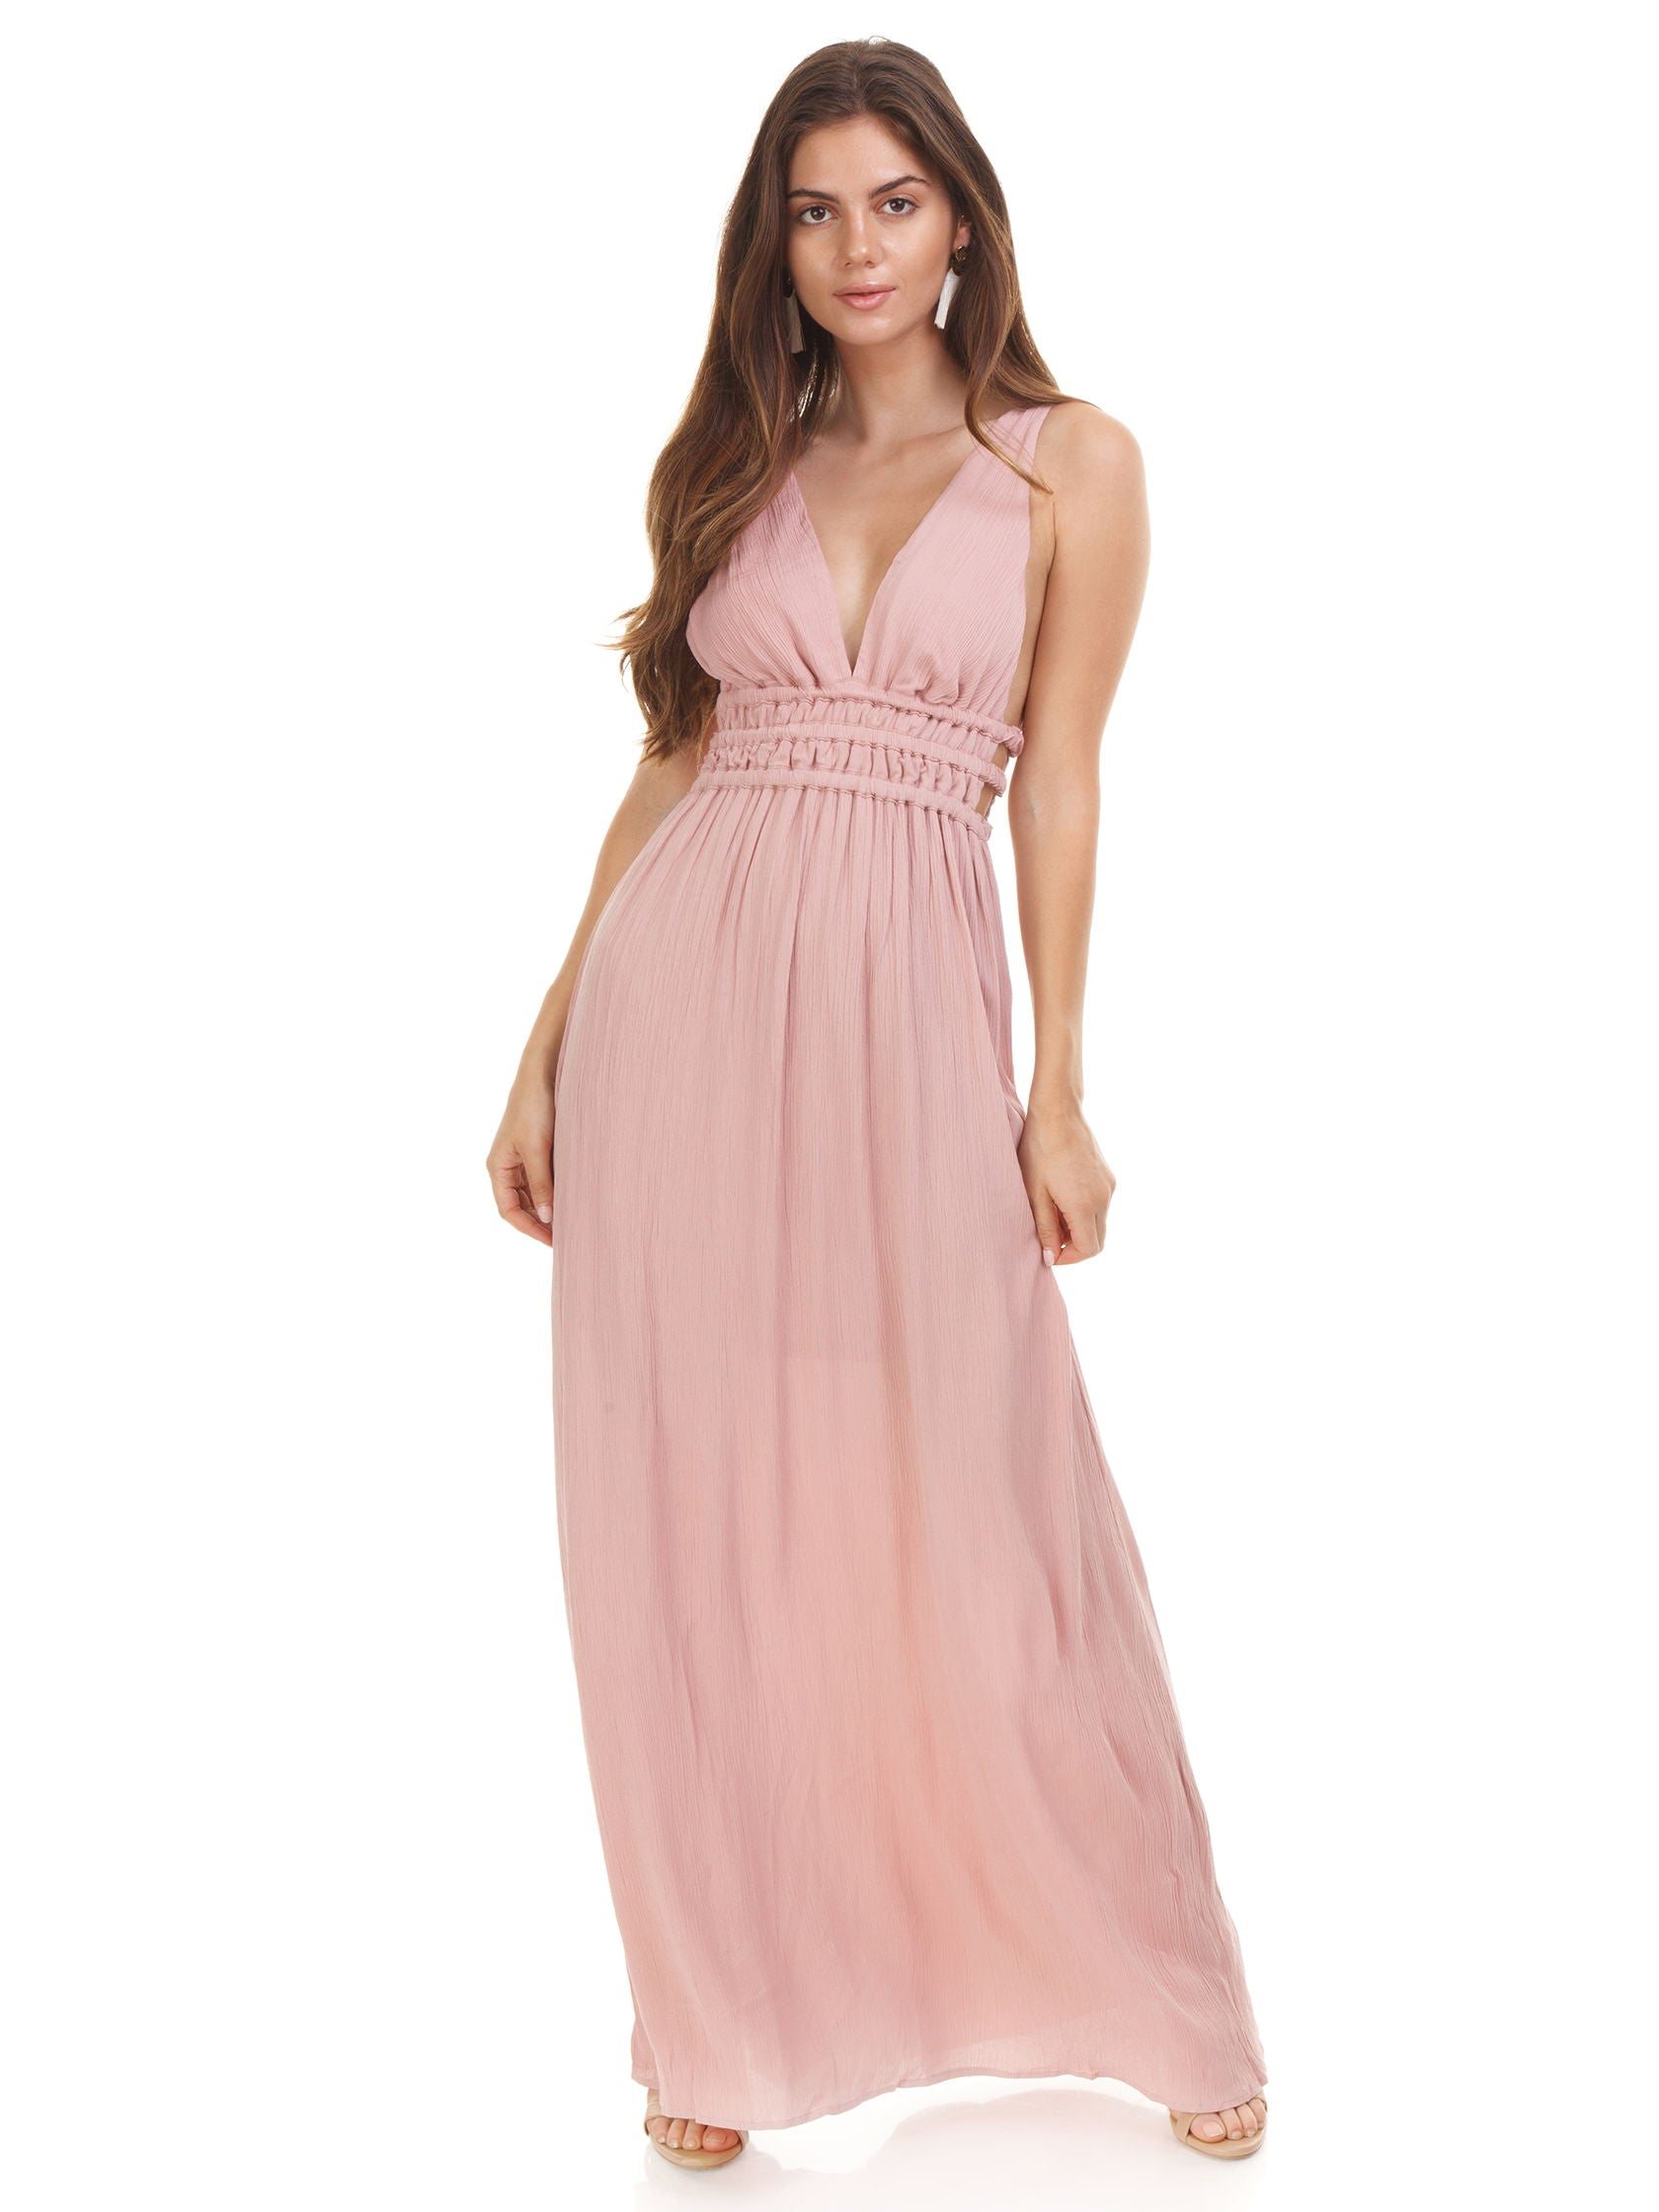 726ef1f34c8 Girl outfit in a dress rental from WAYF called Surrey Plunging Cut Out Maxi  Dress